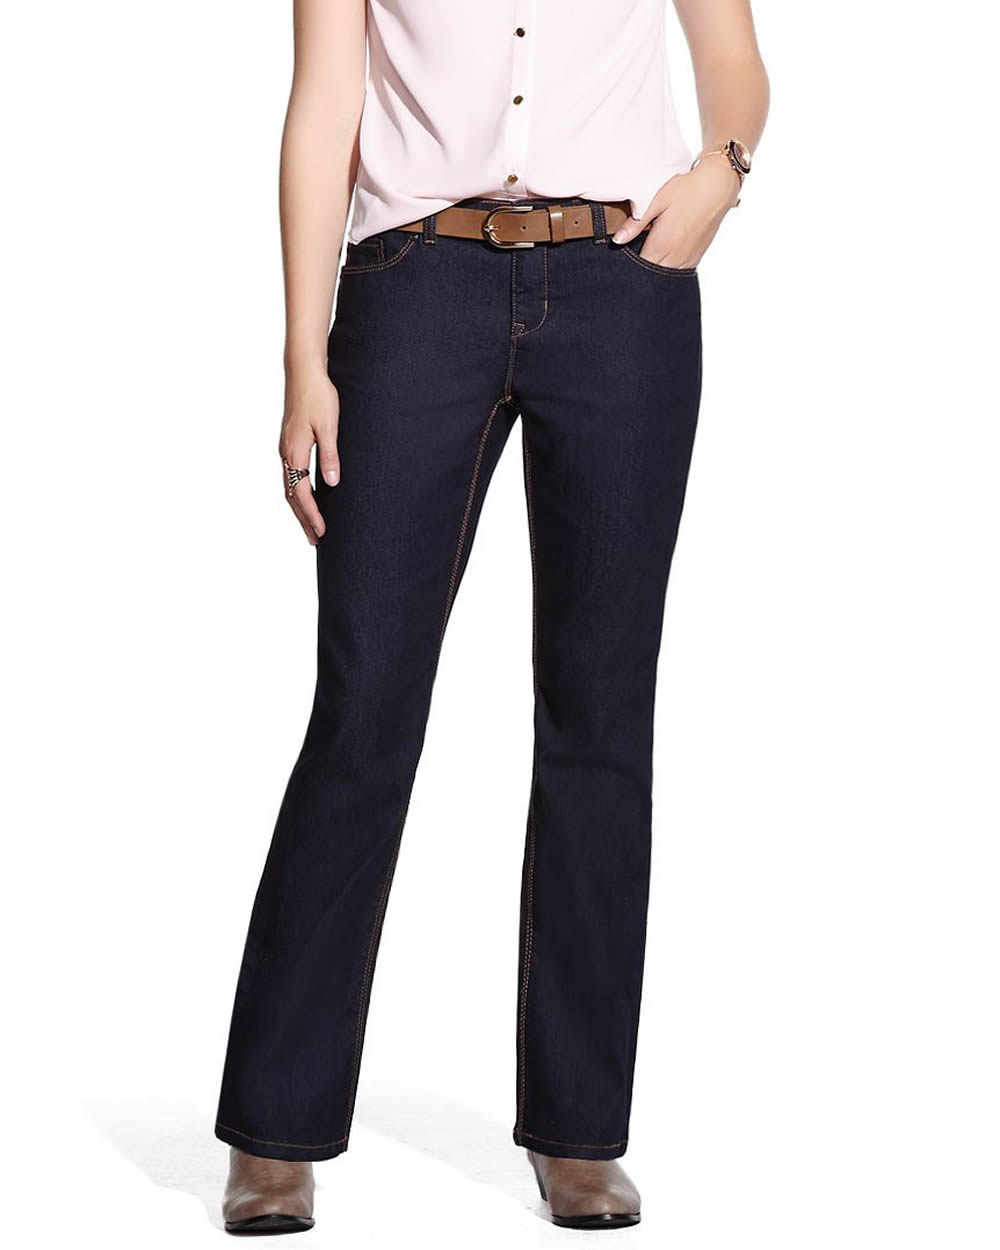 Soho Jeans Petite Curvy Bootcut Bronzehued hardware and contrast Lee Women's Petite Modern Series Curvy Fit Maxwell Trouser. by LEE. $ - $ $ 21 $ 83 11 Prime. FREE Shipping on eligible orders. Some sizes/colors are Prime eligible. 4 out of 5 stars Product Features.